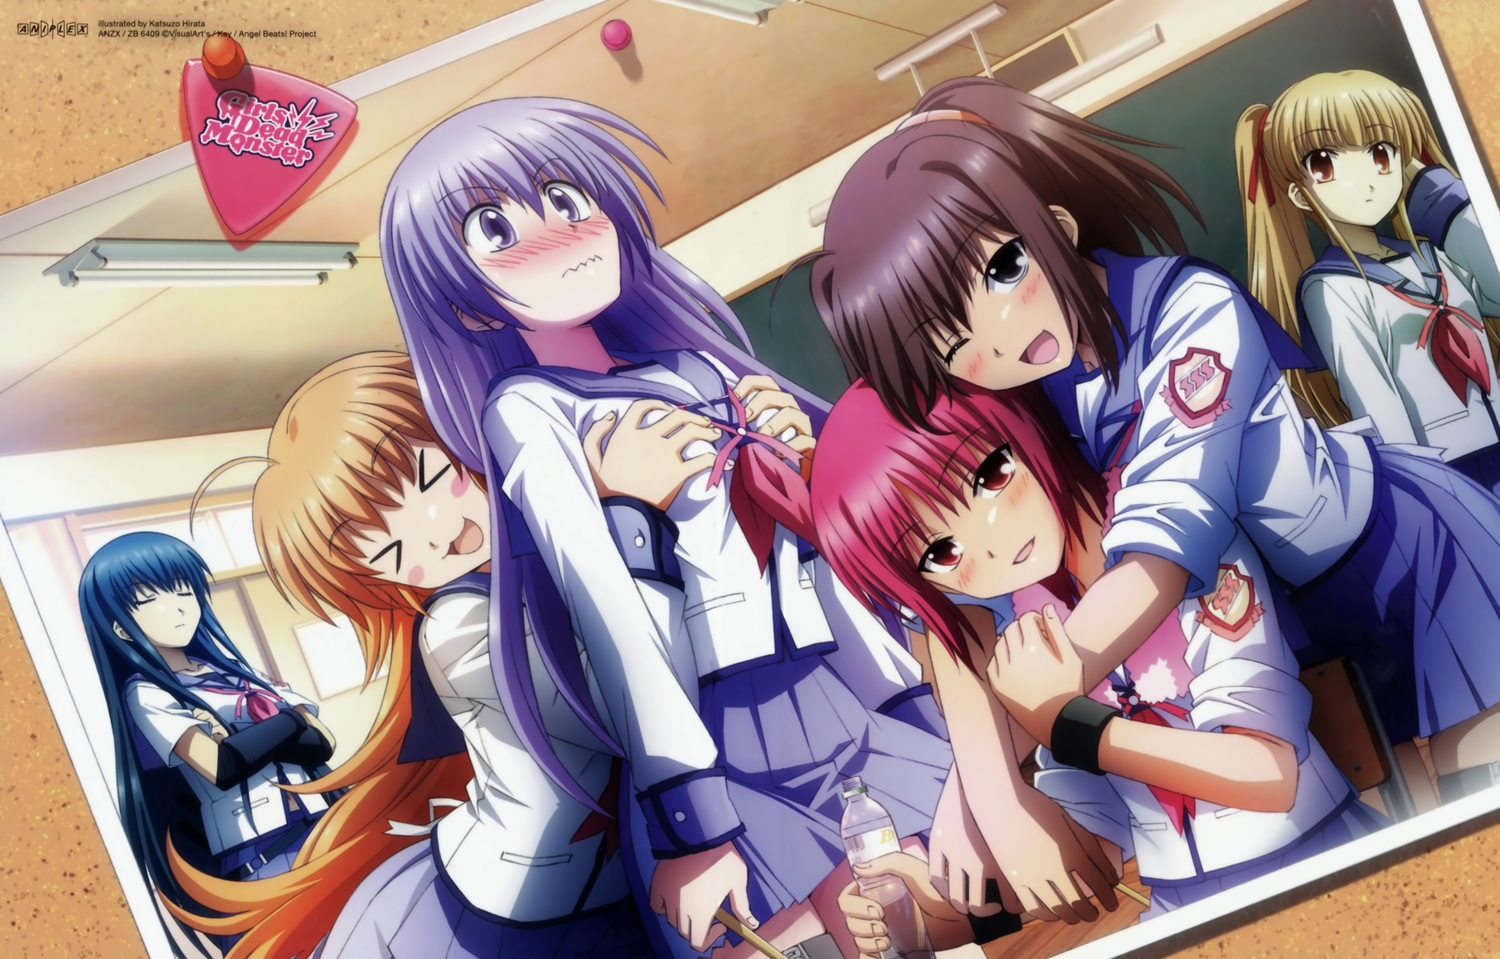 angel_beats! blonde_hair blue_hair blush breast_grab brown_eyes brown_hair drink gray_eyes group hirata_katsuzou hisako hug irie_miyuki iwasawa_masami key long_hair orange_hair ponytail purple_eyes purple_hair red_eyes red_hair scan school_uniform sekine_shiori shiina short_hair shoujo_ai skirt twintails visualart watermark wink wristwear yusa